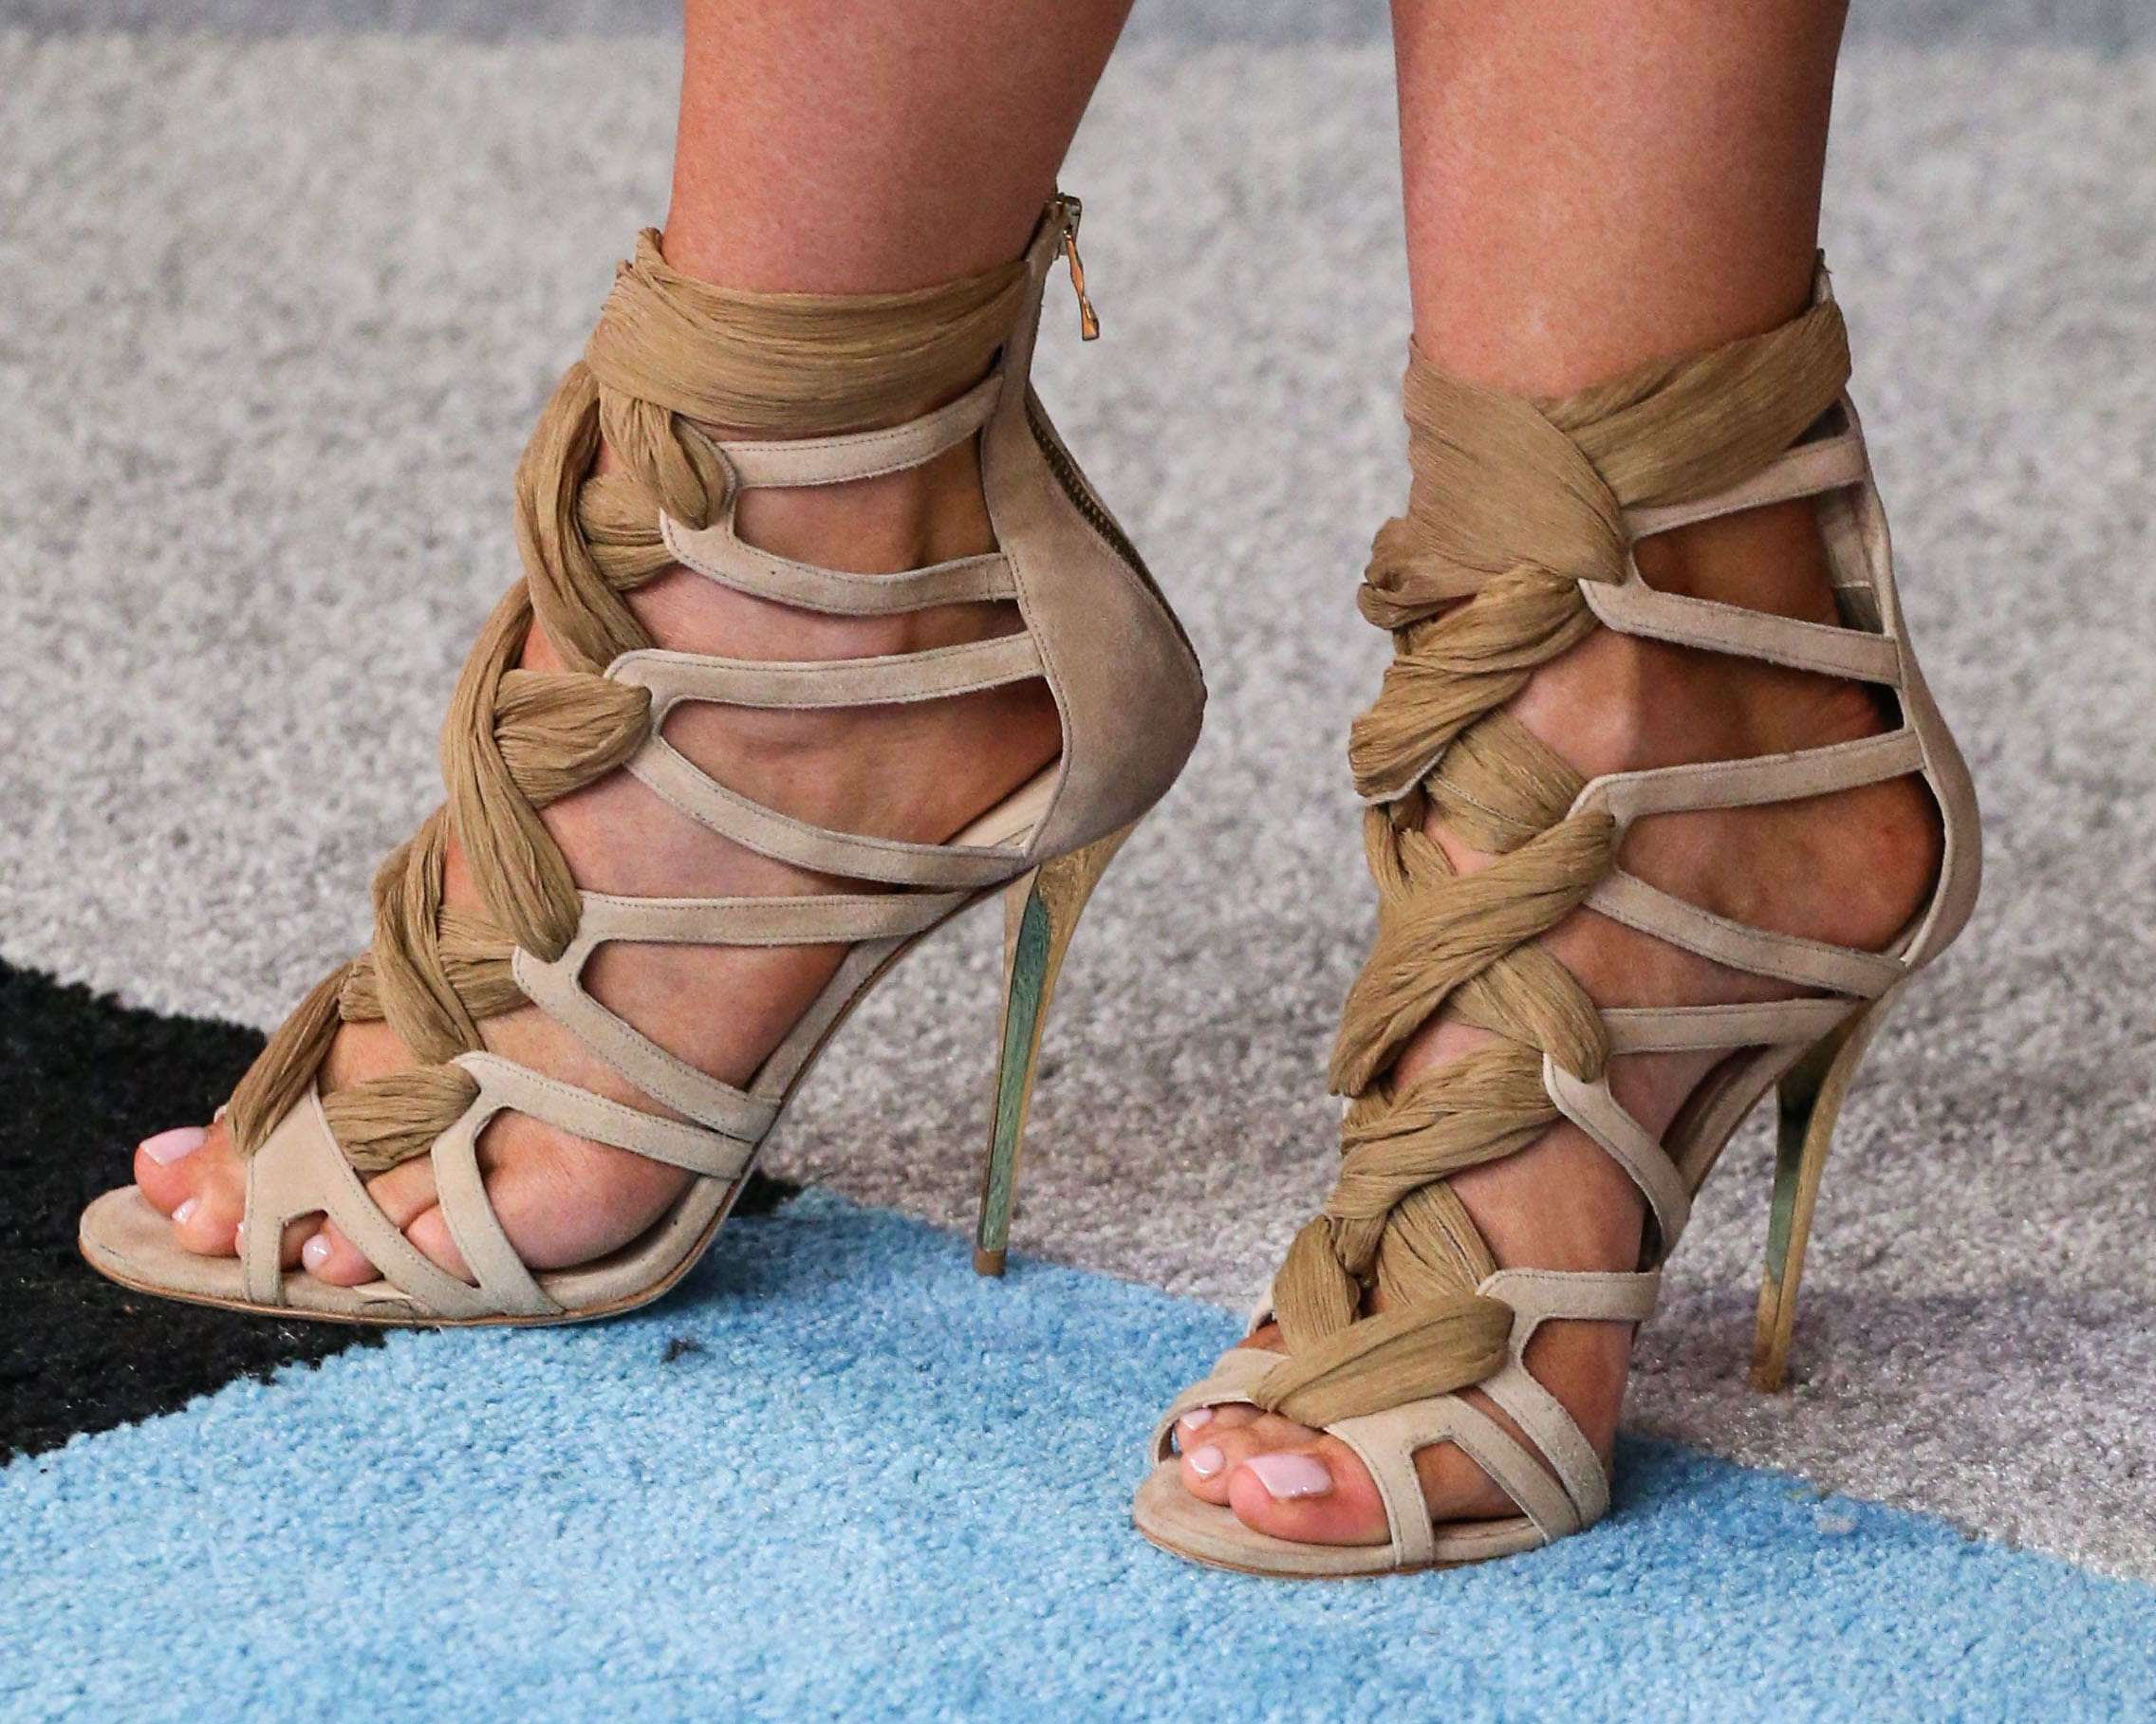 49 Sexy Kylie Jenner Feet Pictures Which Will Drive You